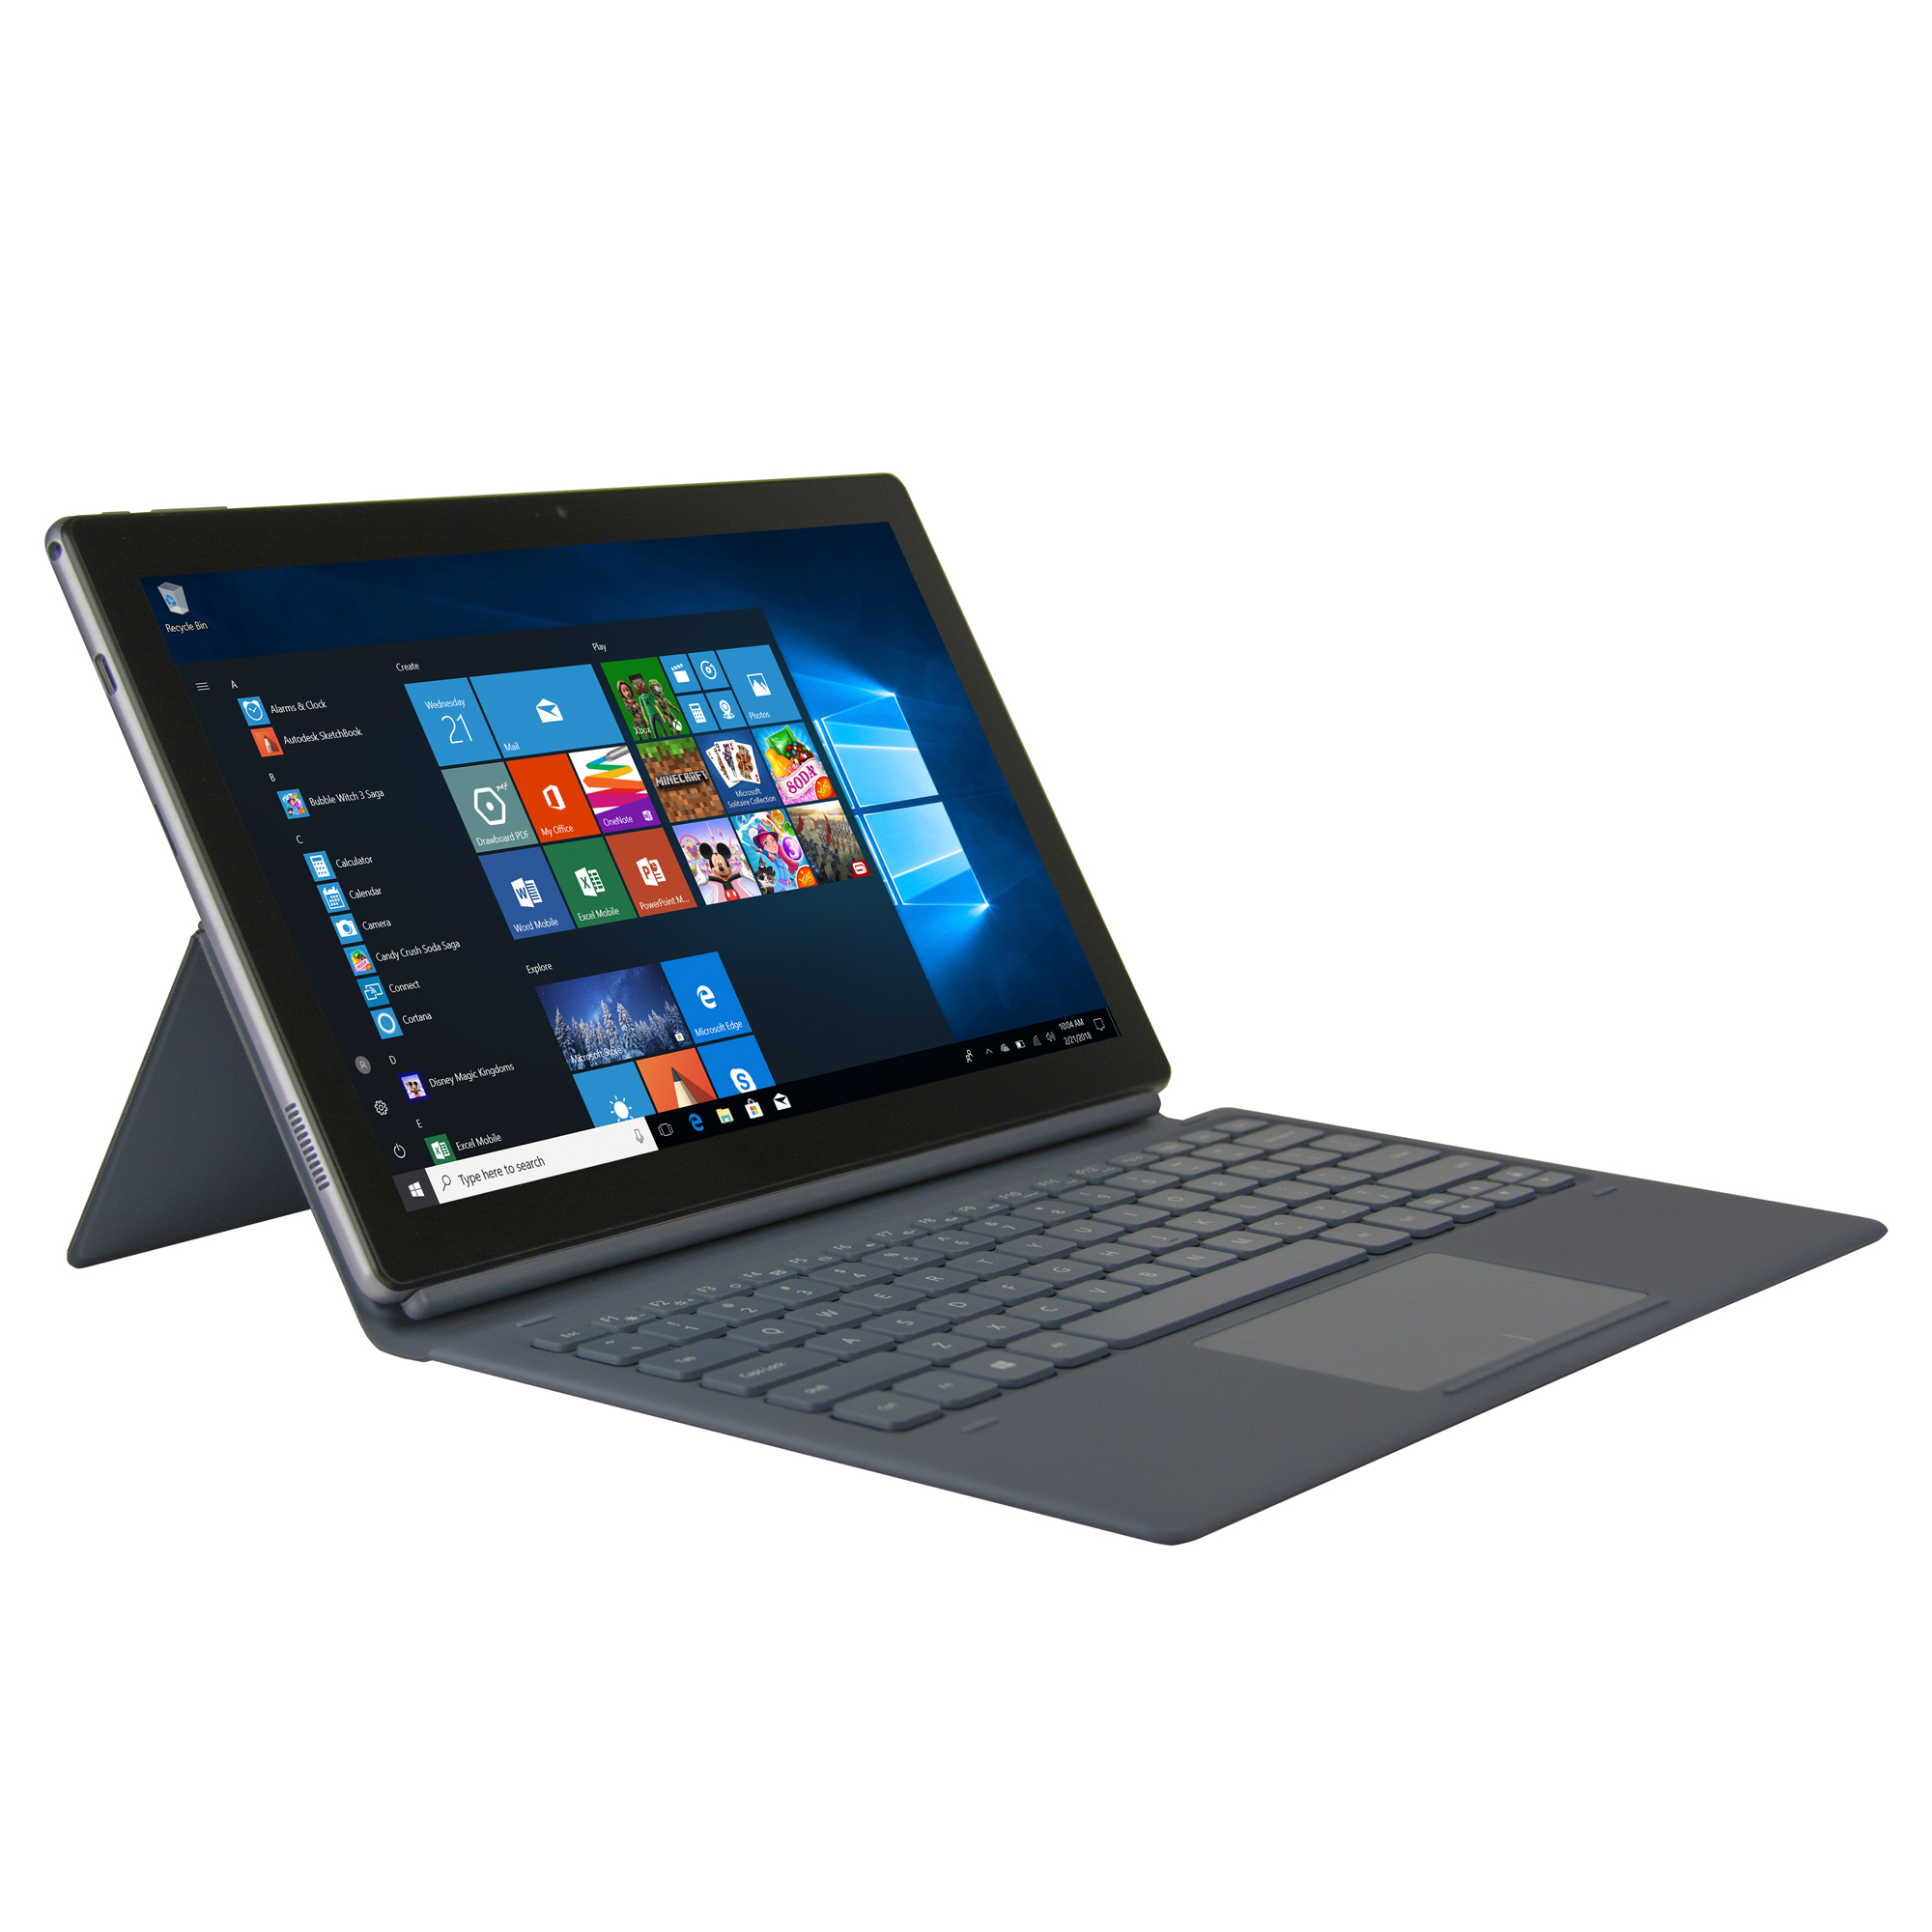 "Nuvision Split 11.6"" 2n1 Tablet"